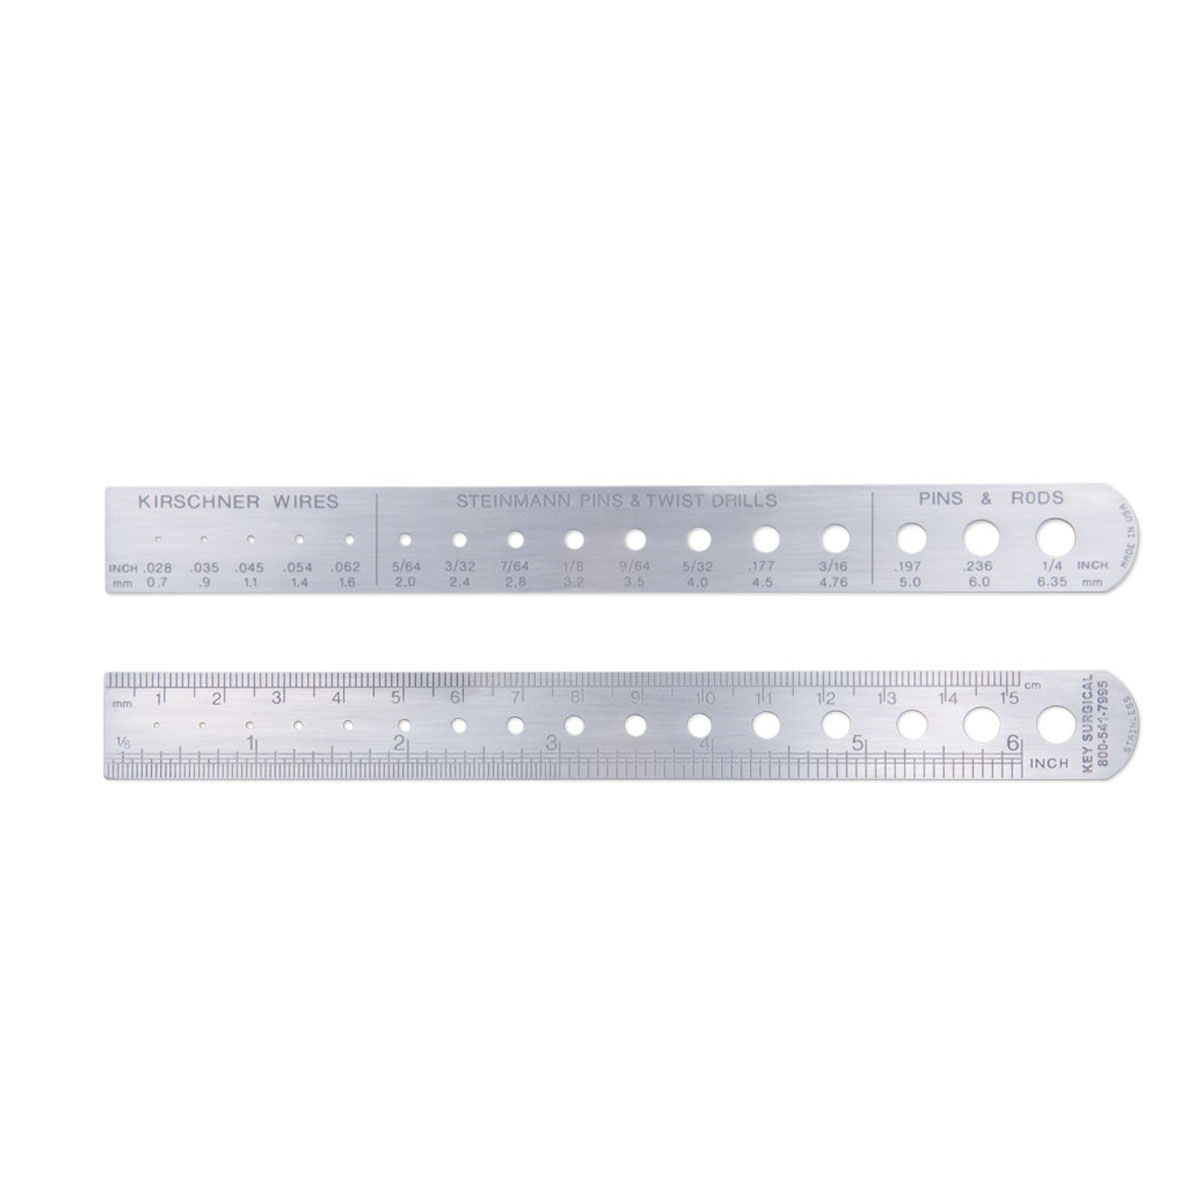 K-Wire Ruler and Pin Gauge Image